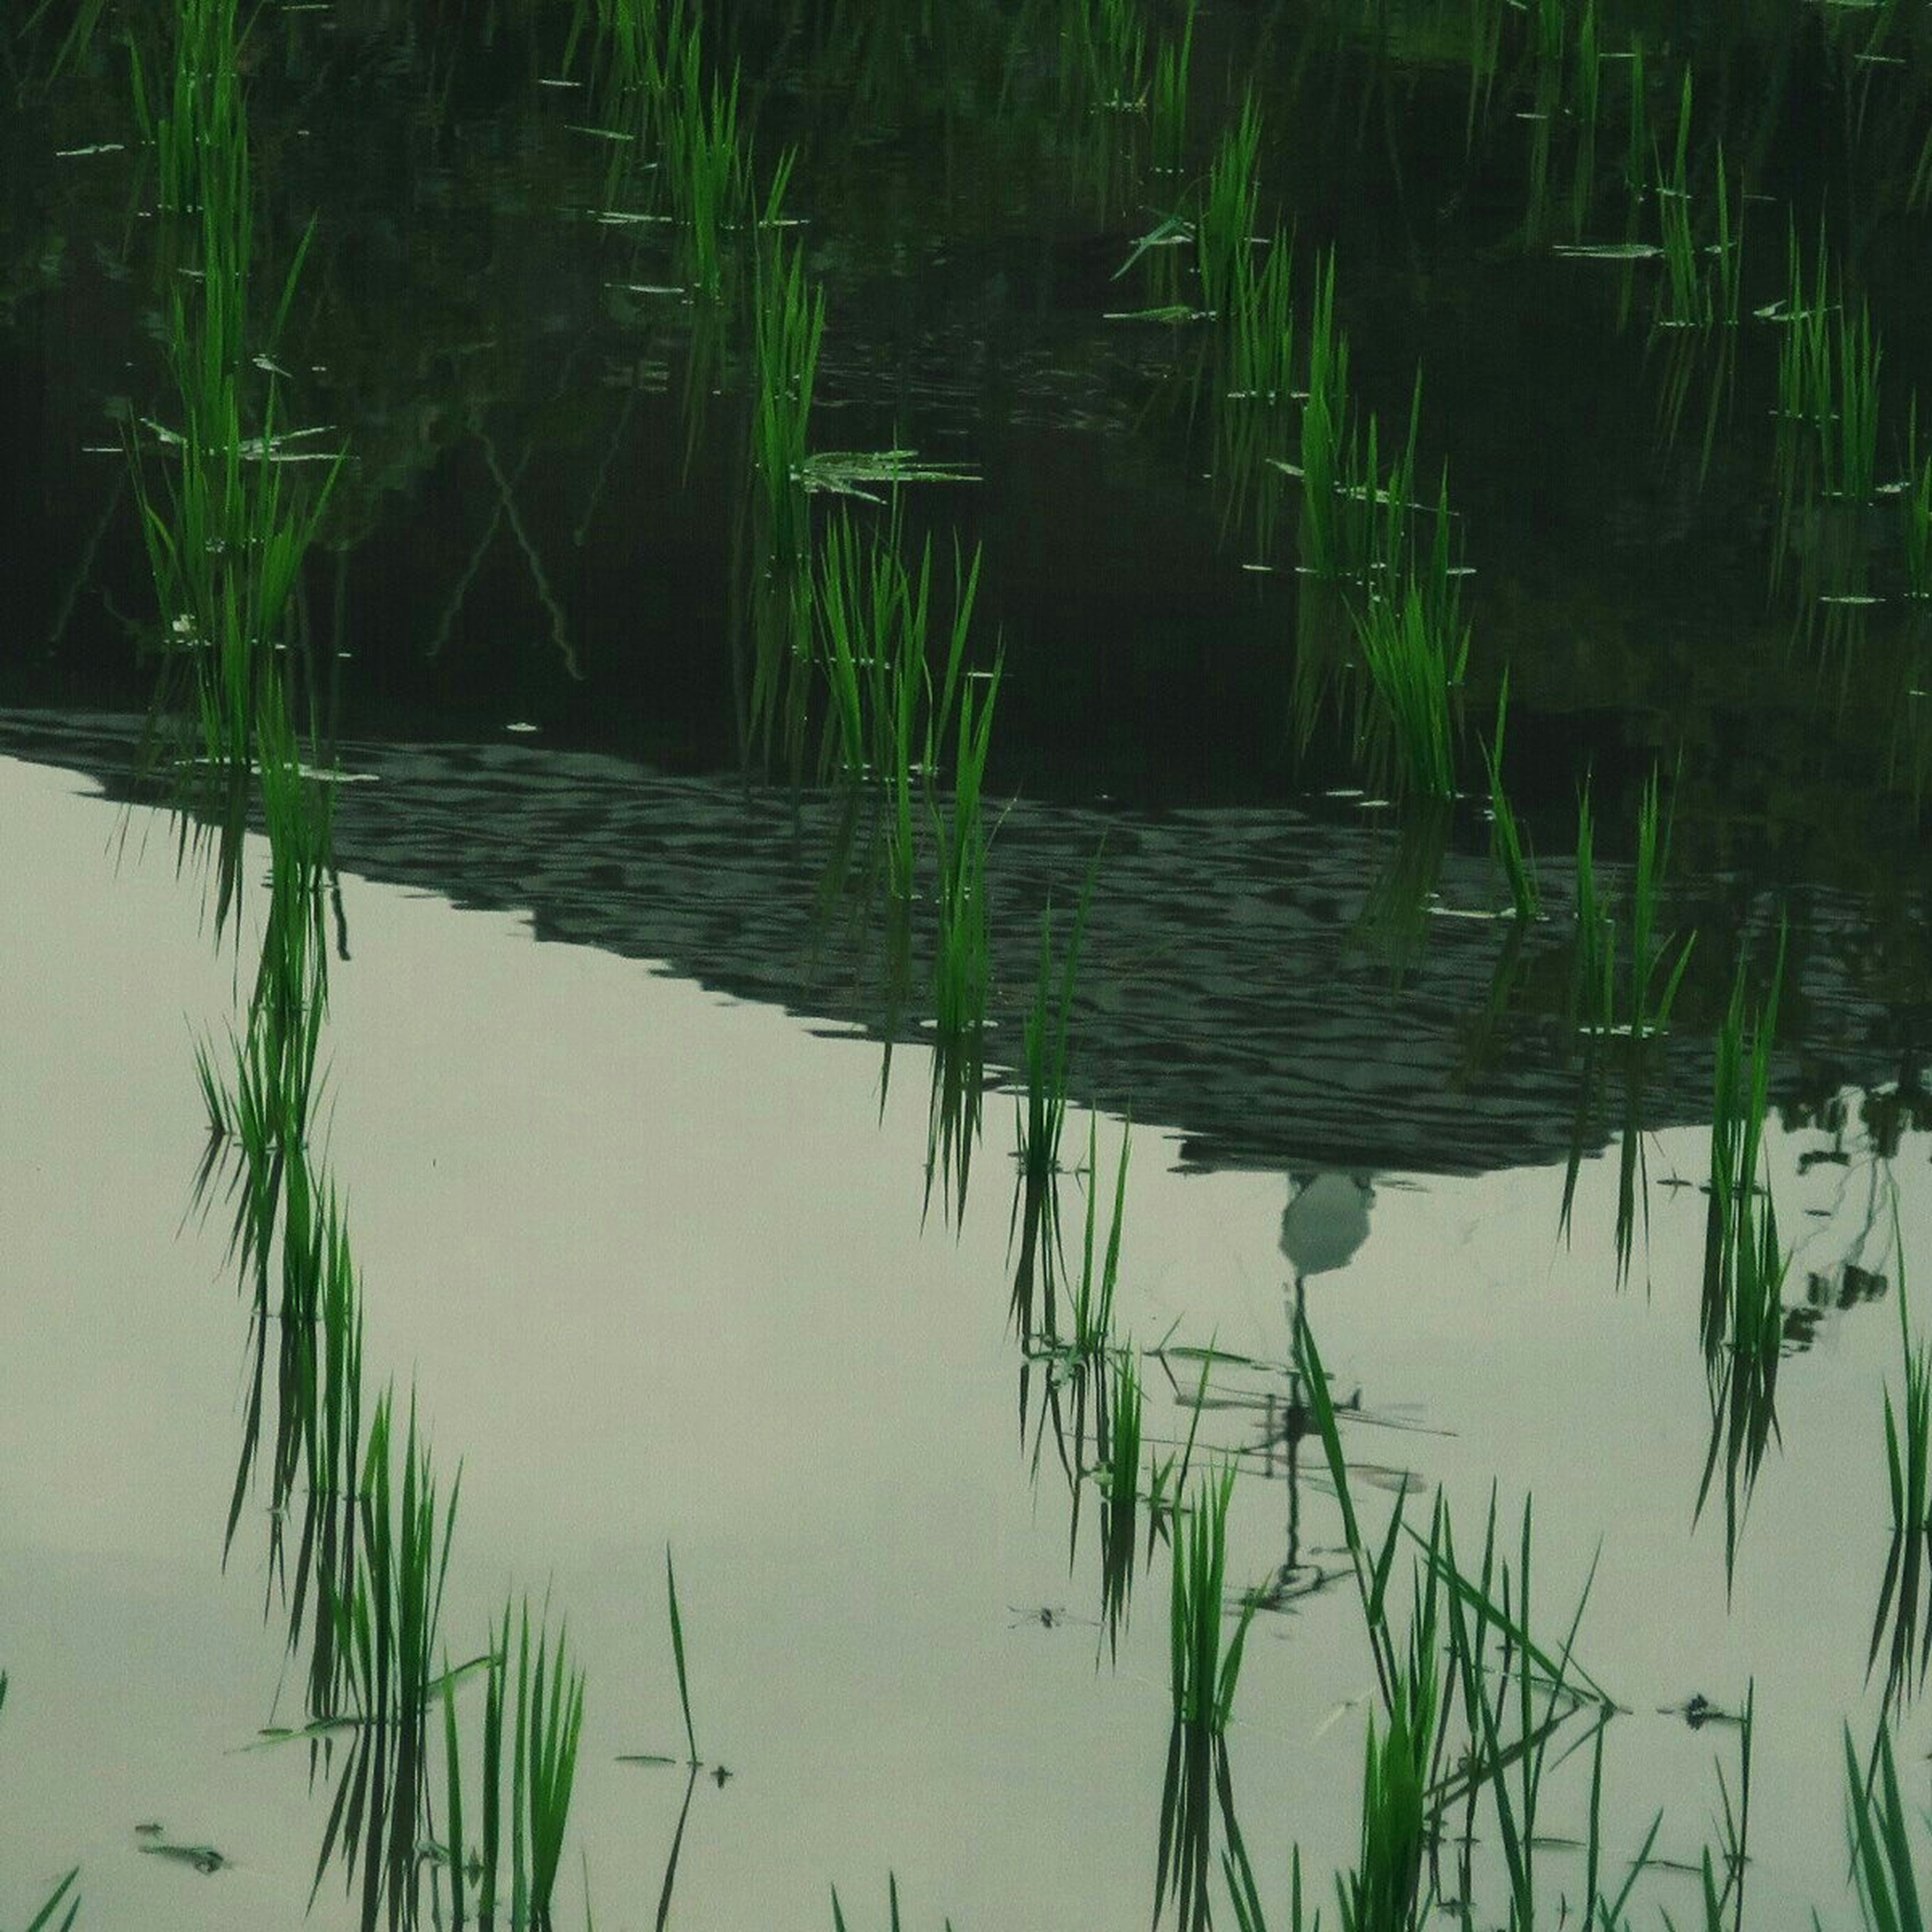 water, reflection, lake, plant, tranquility, nature, growth, grass, standing water, beauty in nature, waterfront, tranquil scene, outdoors, pond, no people, leaf, day, scenics, green color, idyllic